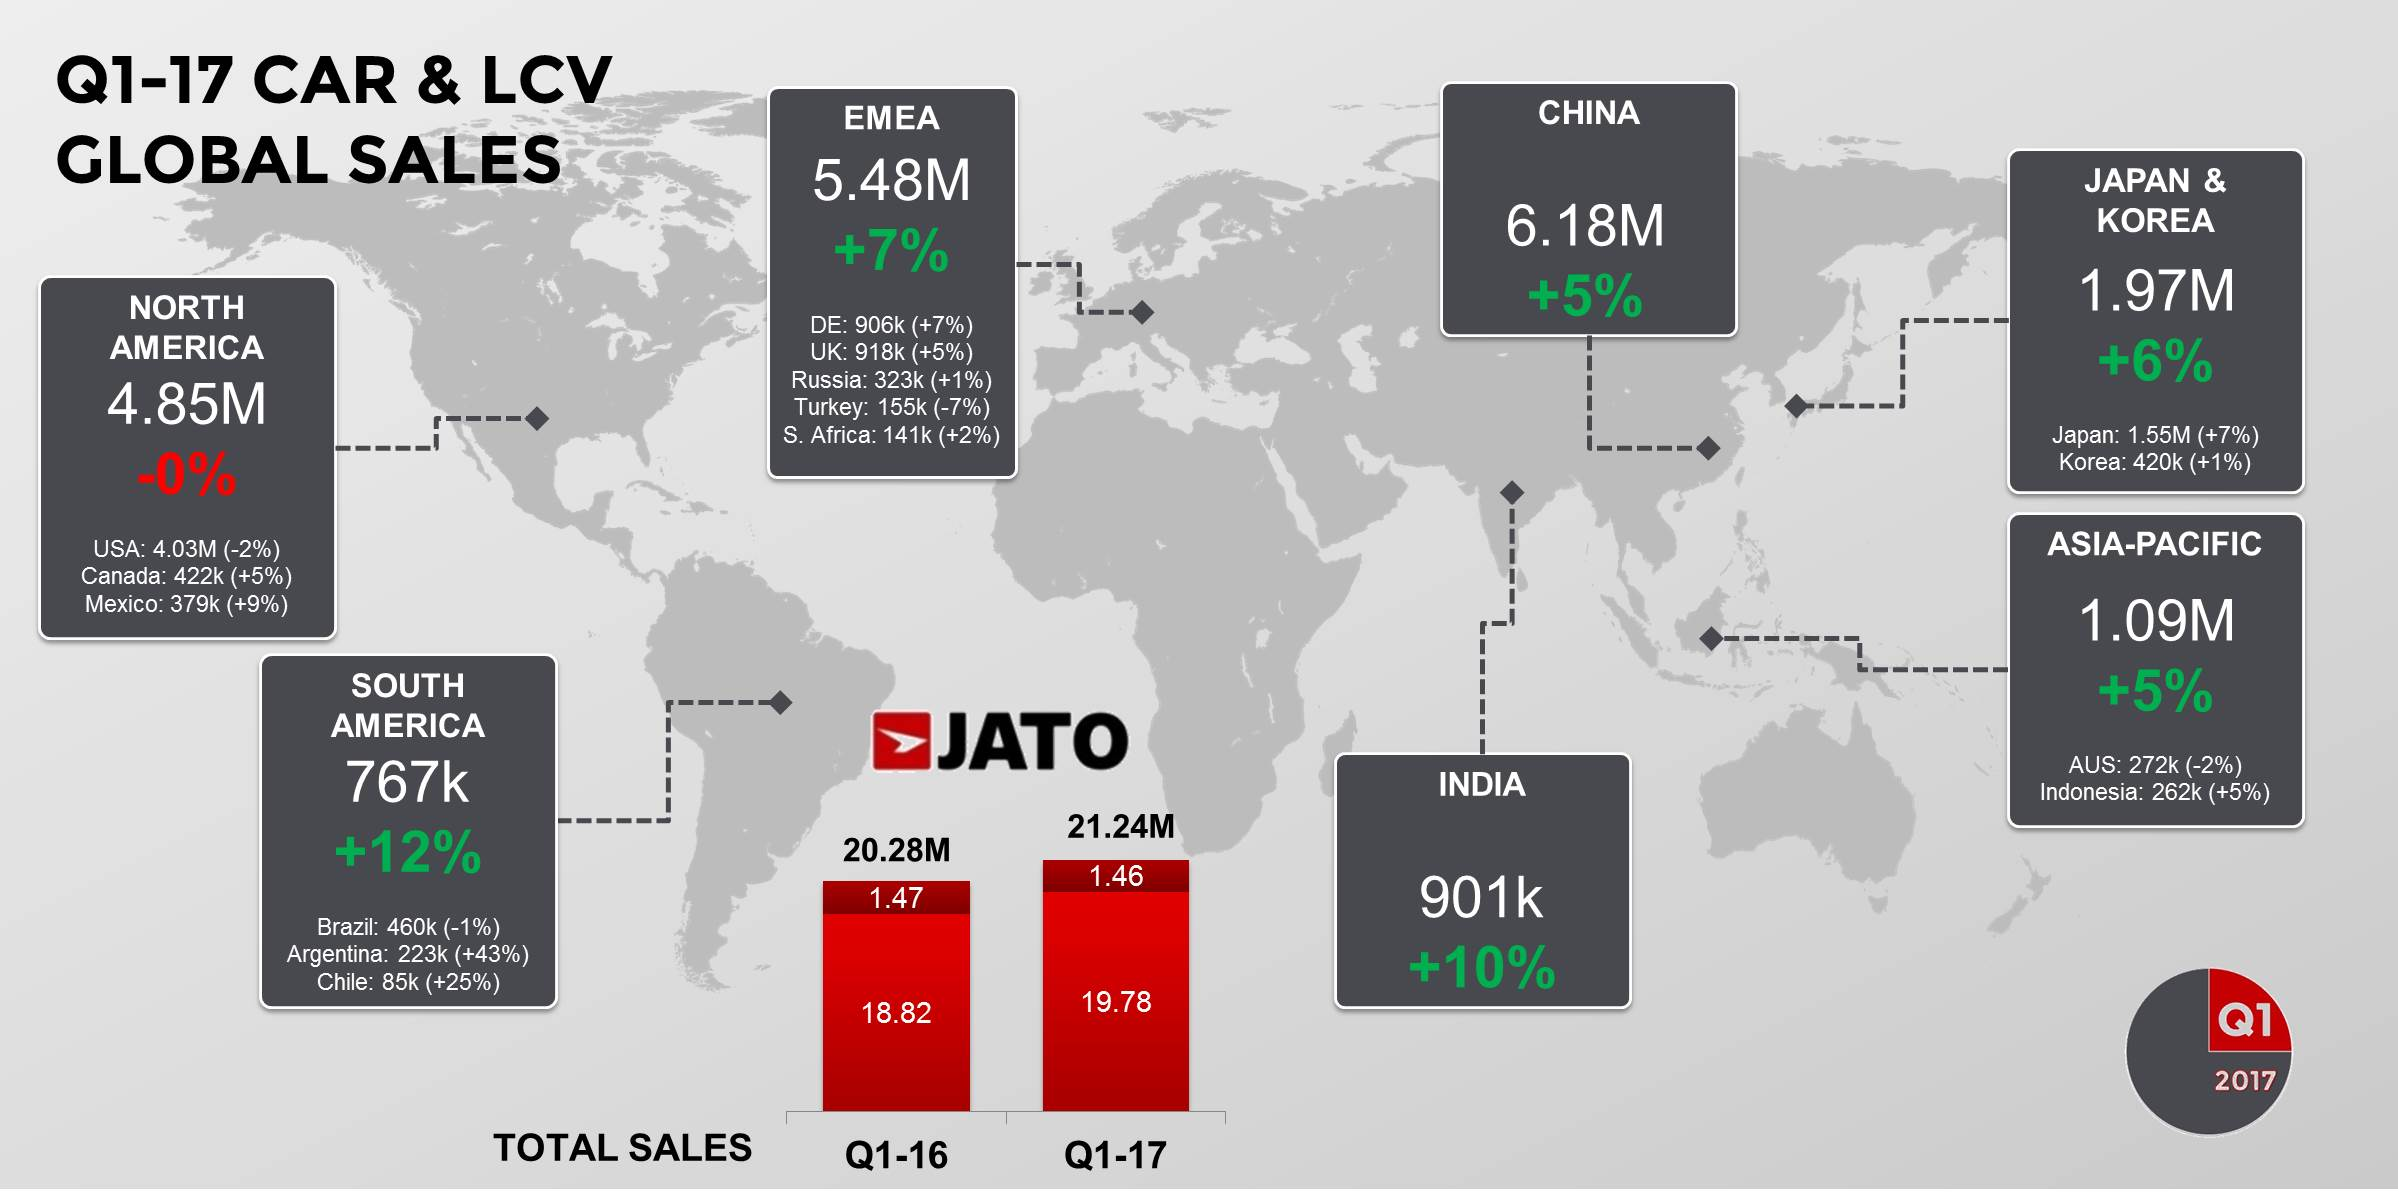 global vehicle sales up4.7% in q1-17 with renault-nissan hitting